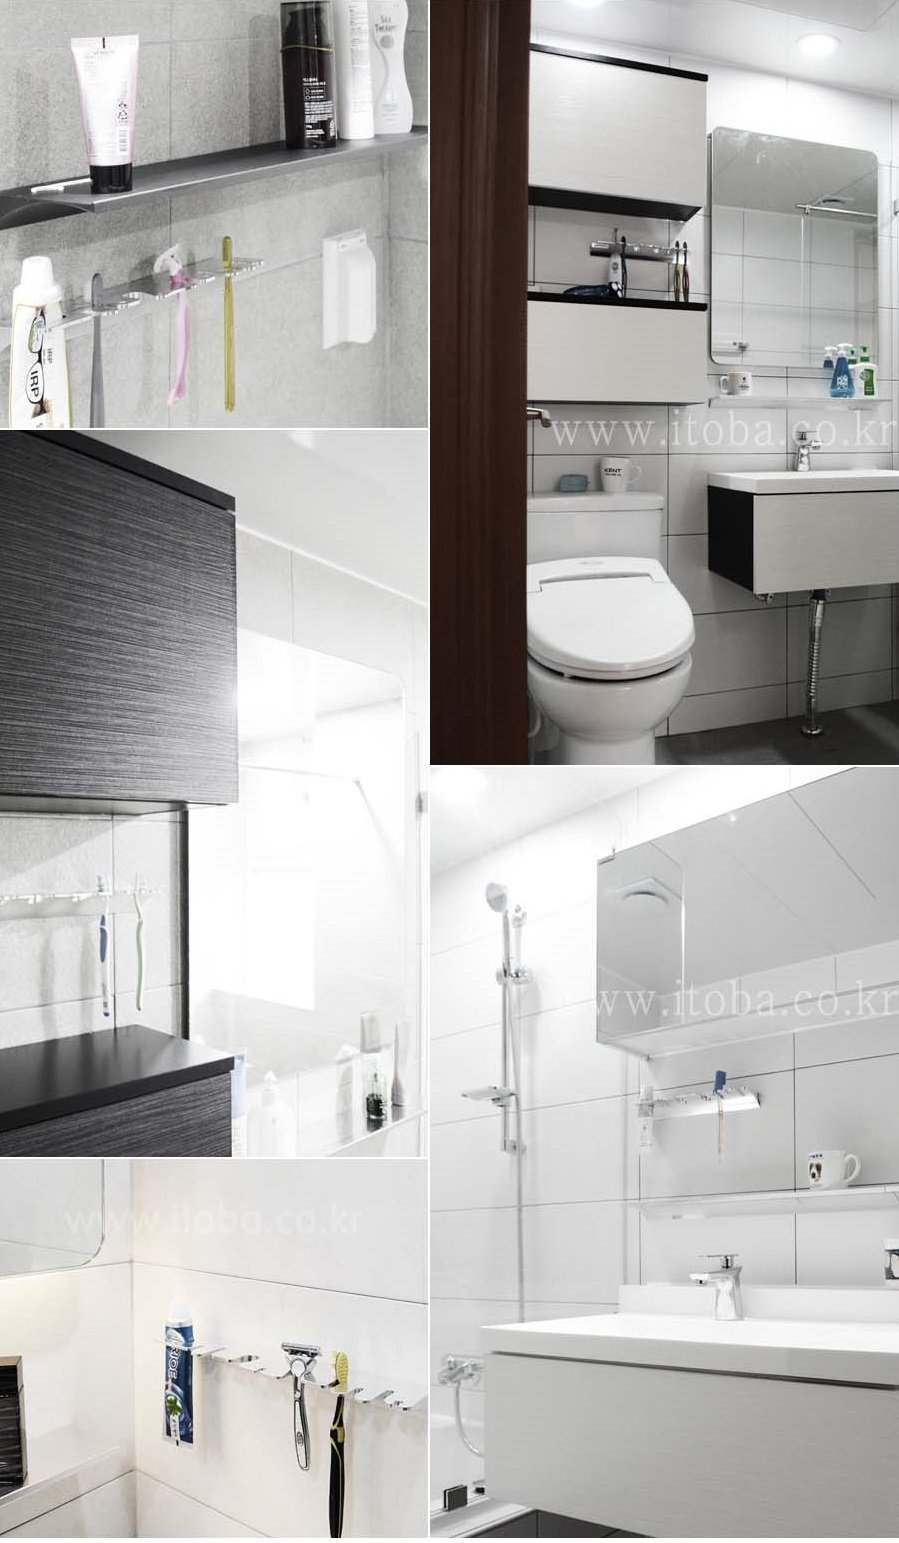 Octo Material First Antibacterial Toothbrush Holder Stand for Bathroom Vanity Silver by Tobathysteme (Image #3)